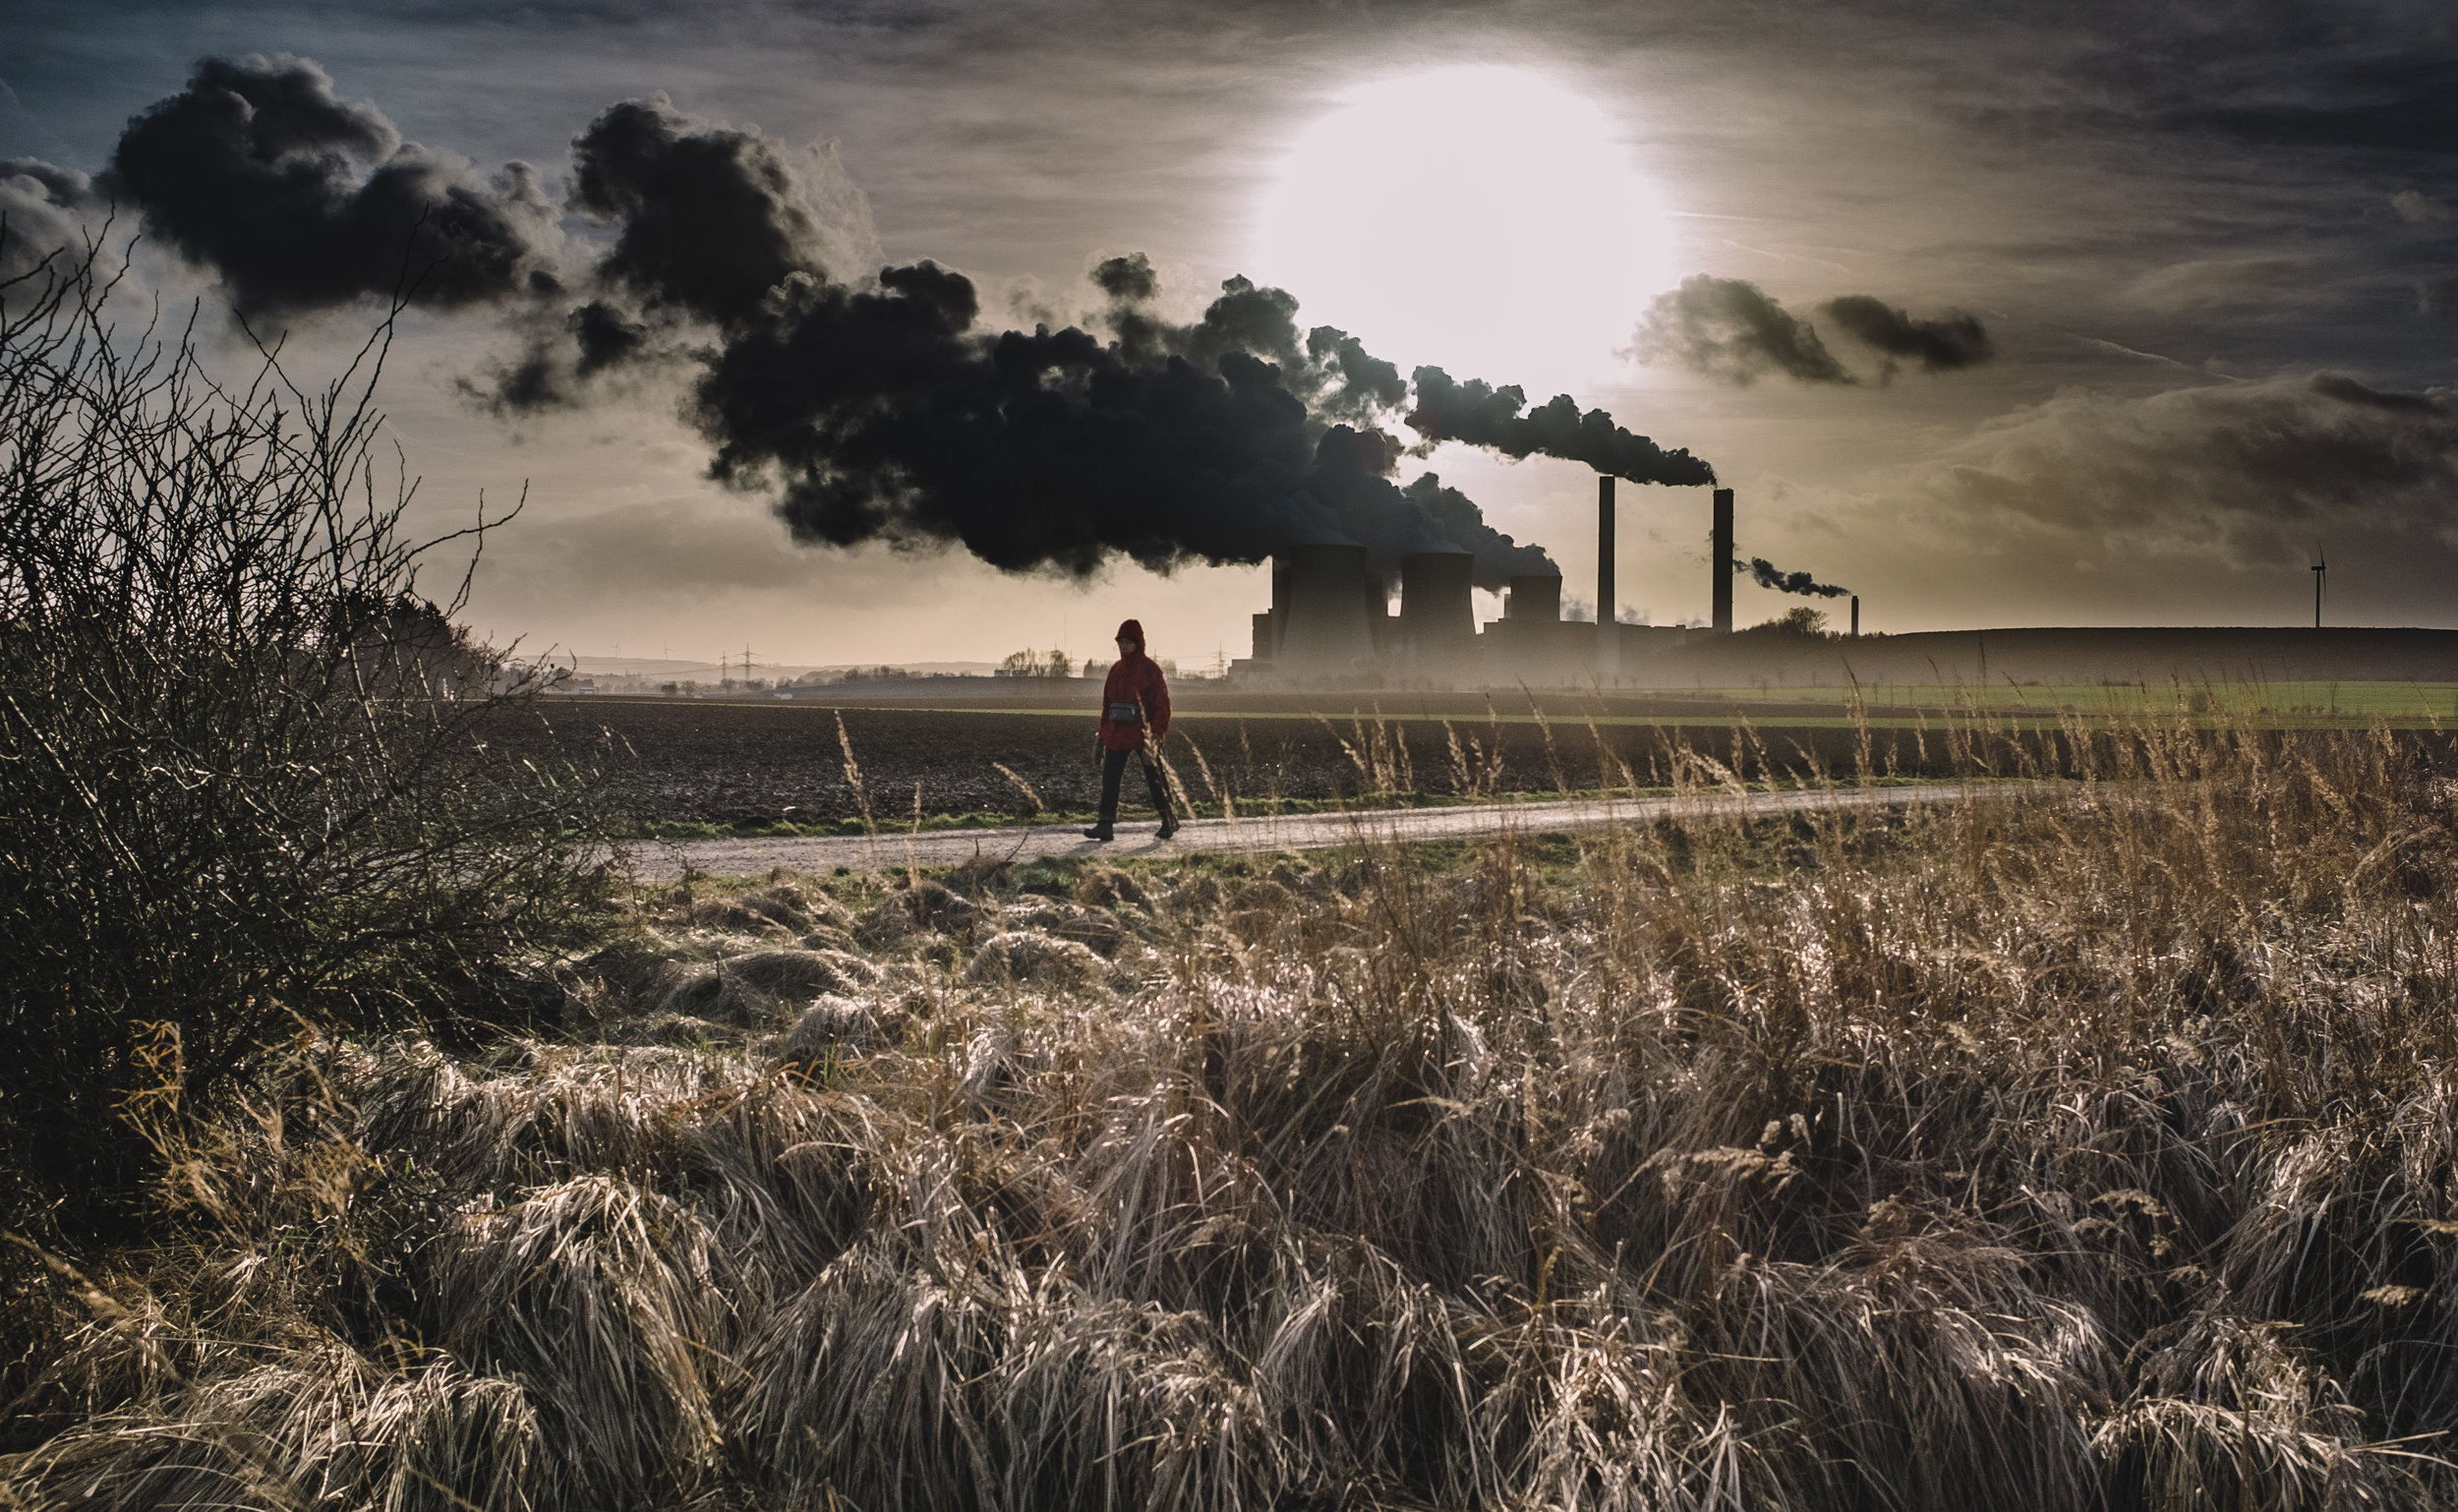 The US produces more than 5 billion tons of greenhouse gases every year, and is the second leading country in the world by emissions. Photo credit: Thomas Hafeneth